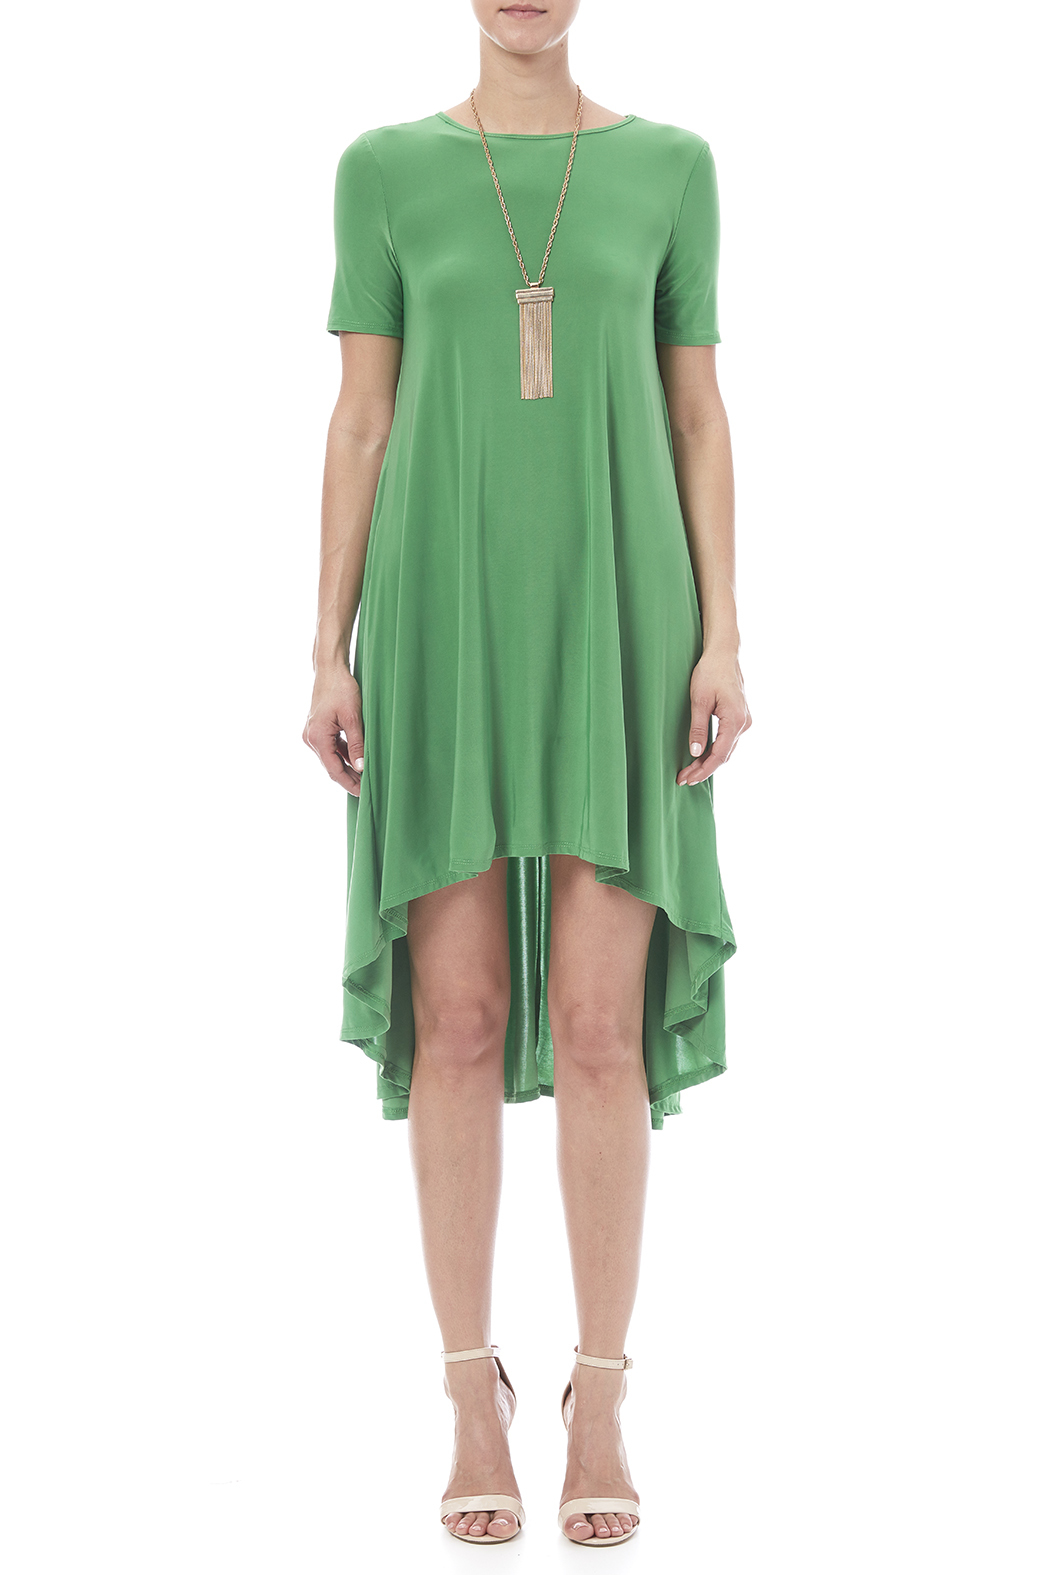 Solo La Fee Emerald High Low Dress - Front Cropped Image